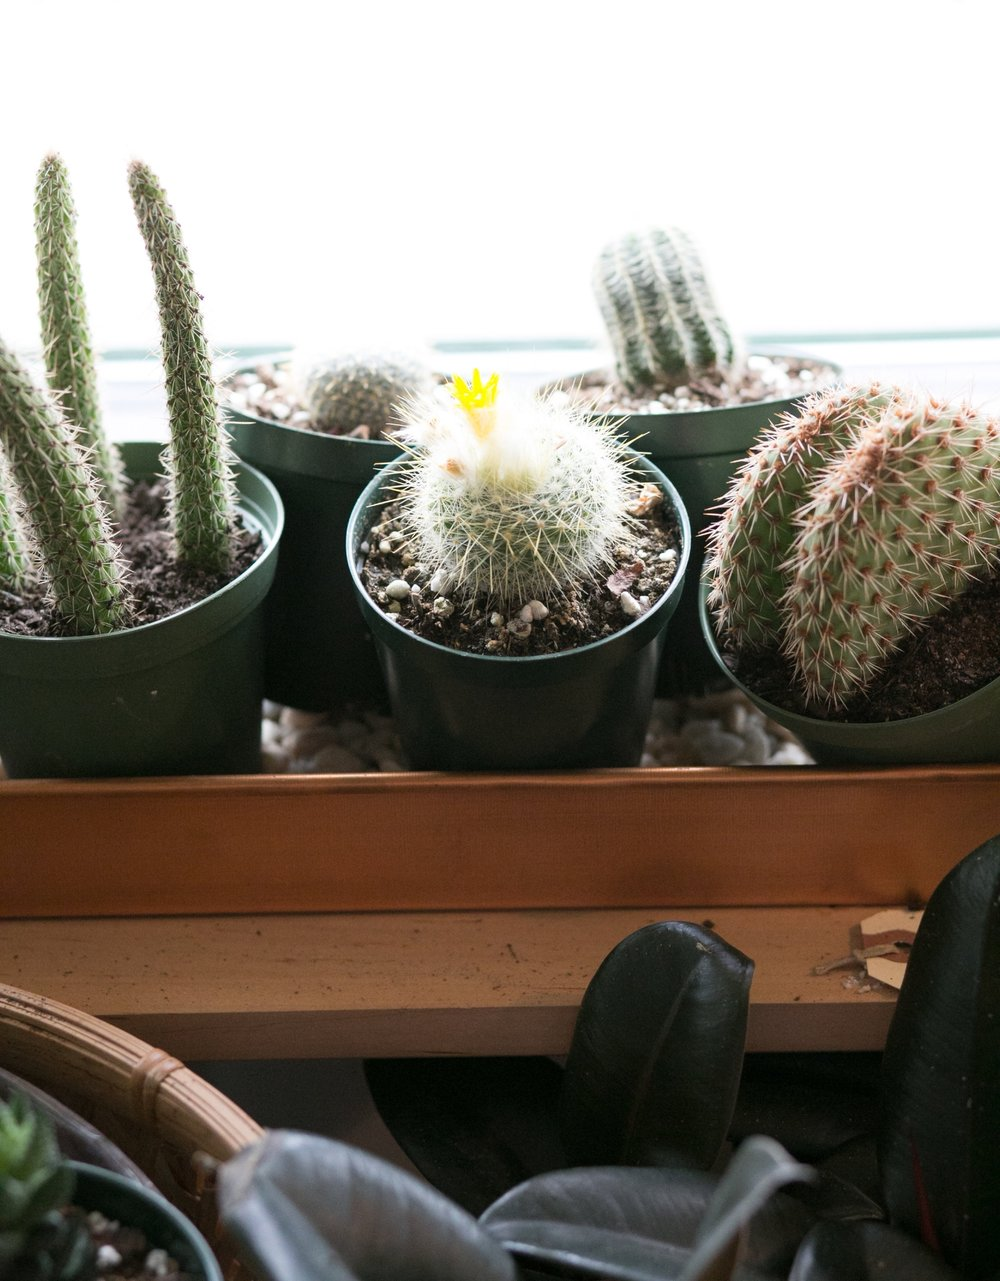 Cacti and succulents are the best plants to have if you travel frequently.  They need very little water and attention.